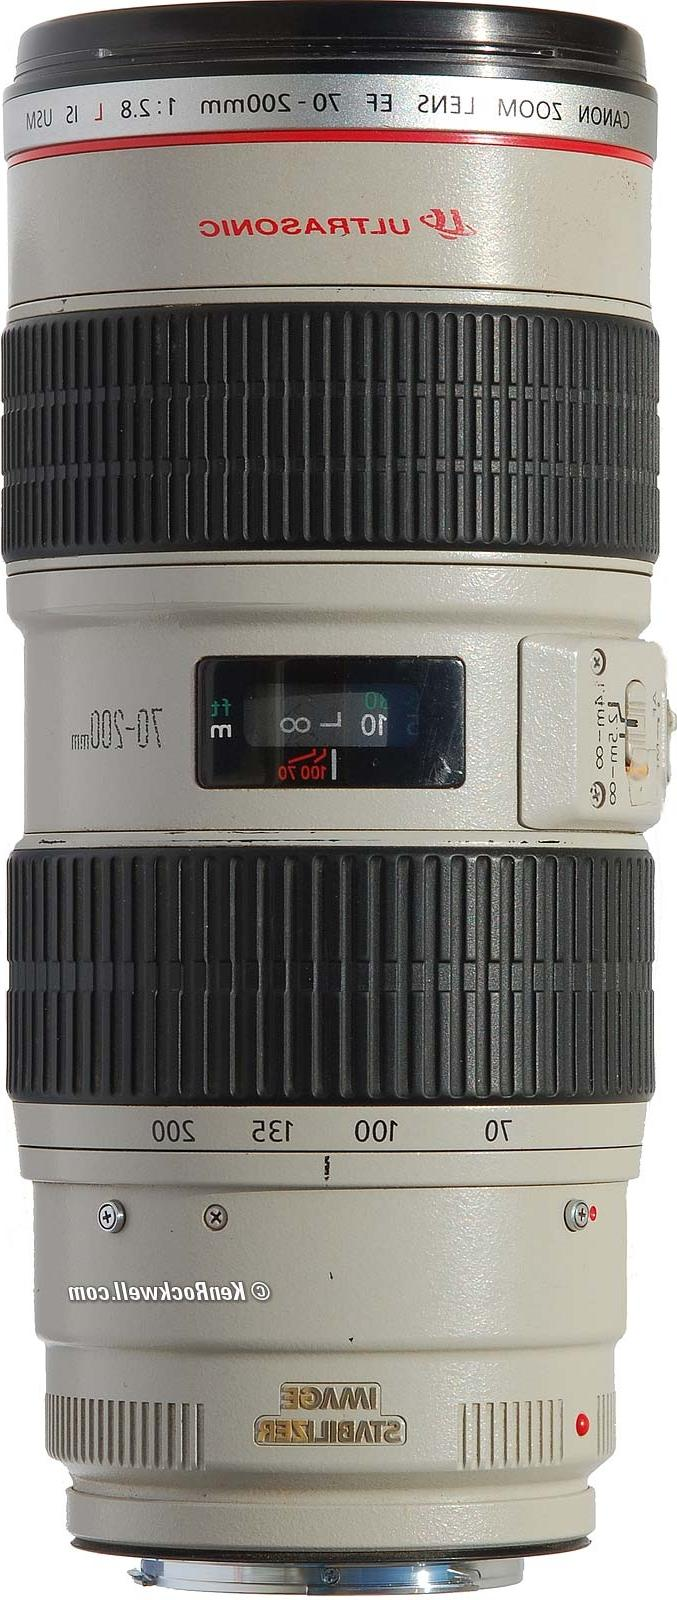 Best lens for furniture photography for Best lens for furniture photography